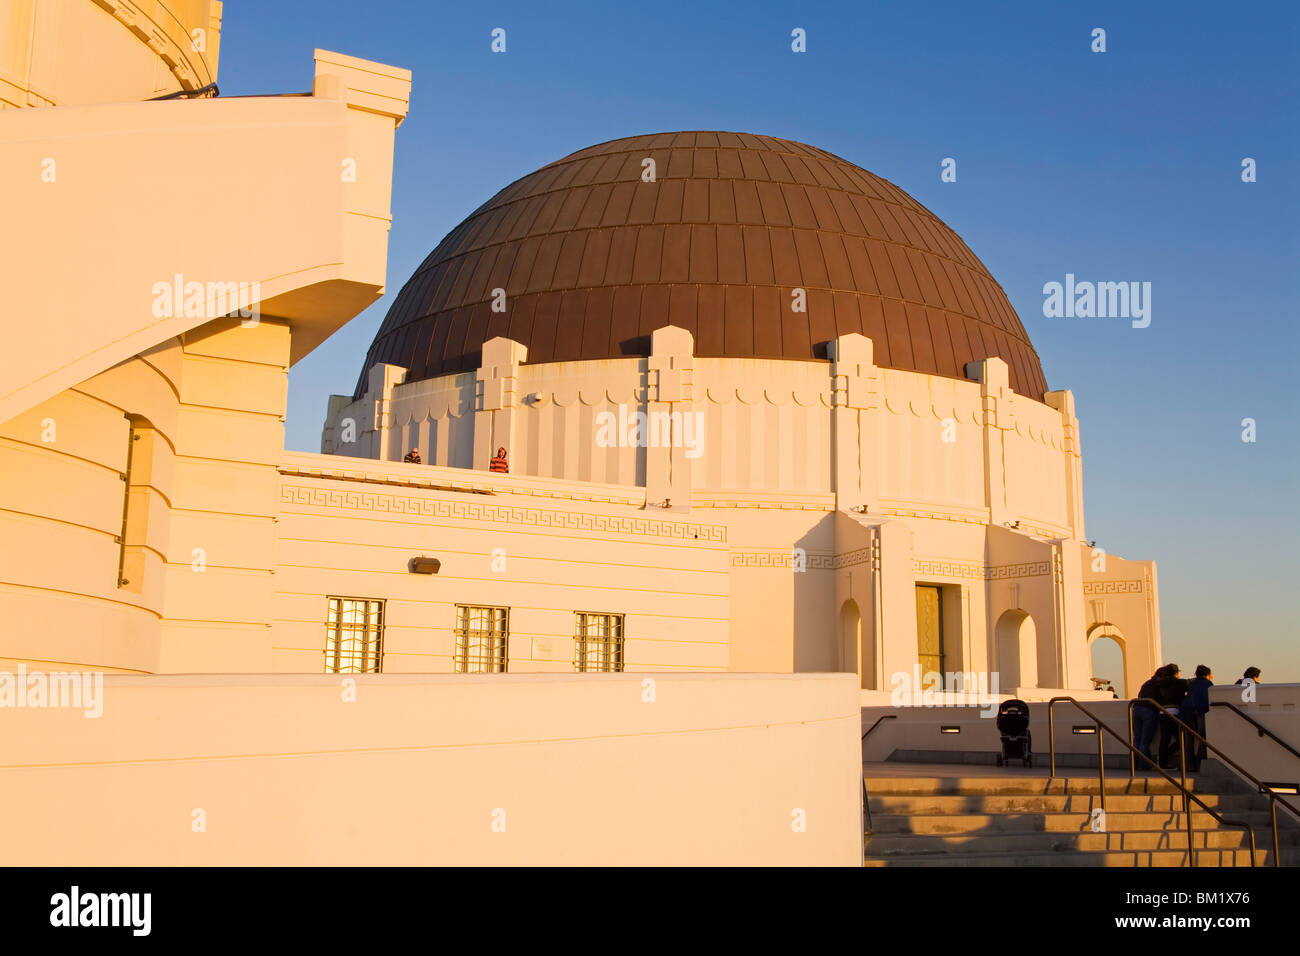 Griffith Observatory, Hollywood, California, United States of America, North America - Stock Image